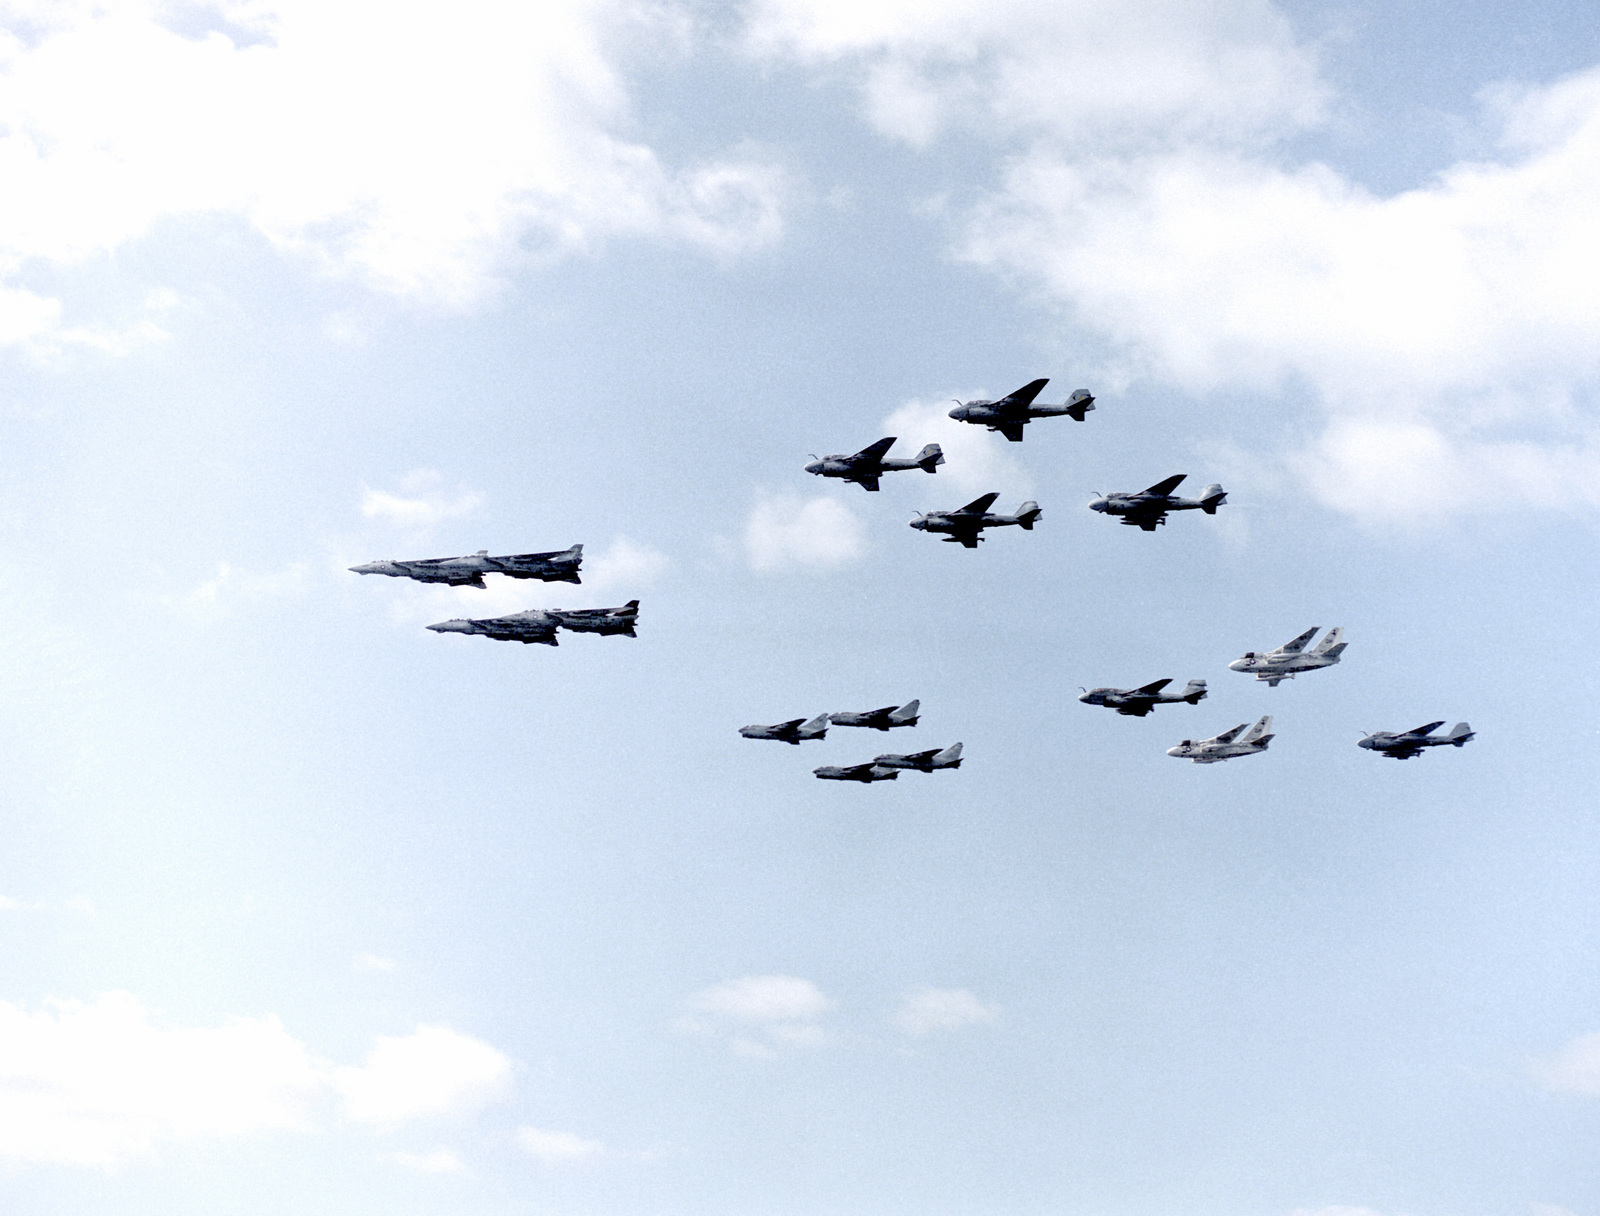 Various U.S. Navy aircraft fly in formation during a flyover demonstration for military officials from the People's Republic of China who are visiting aboard the nuclear-powered aircraft carrier USS NIMITZ (CVN-68). The aircraft include, from foreground: F-14A Tomcat aircraft, A-6E Intruder aircraft, A-7E Corsair II aircraft, and an EA-6B Prowler aircraft leading a group composed of two S-3A Vikings and an A-6E Intruder